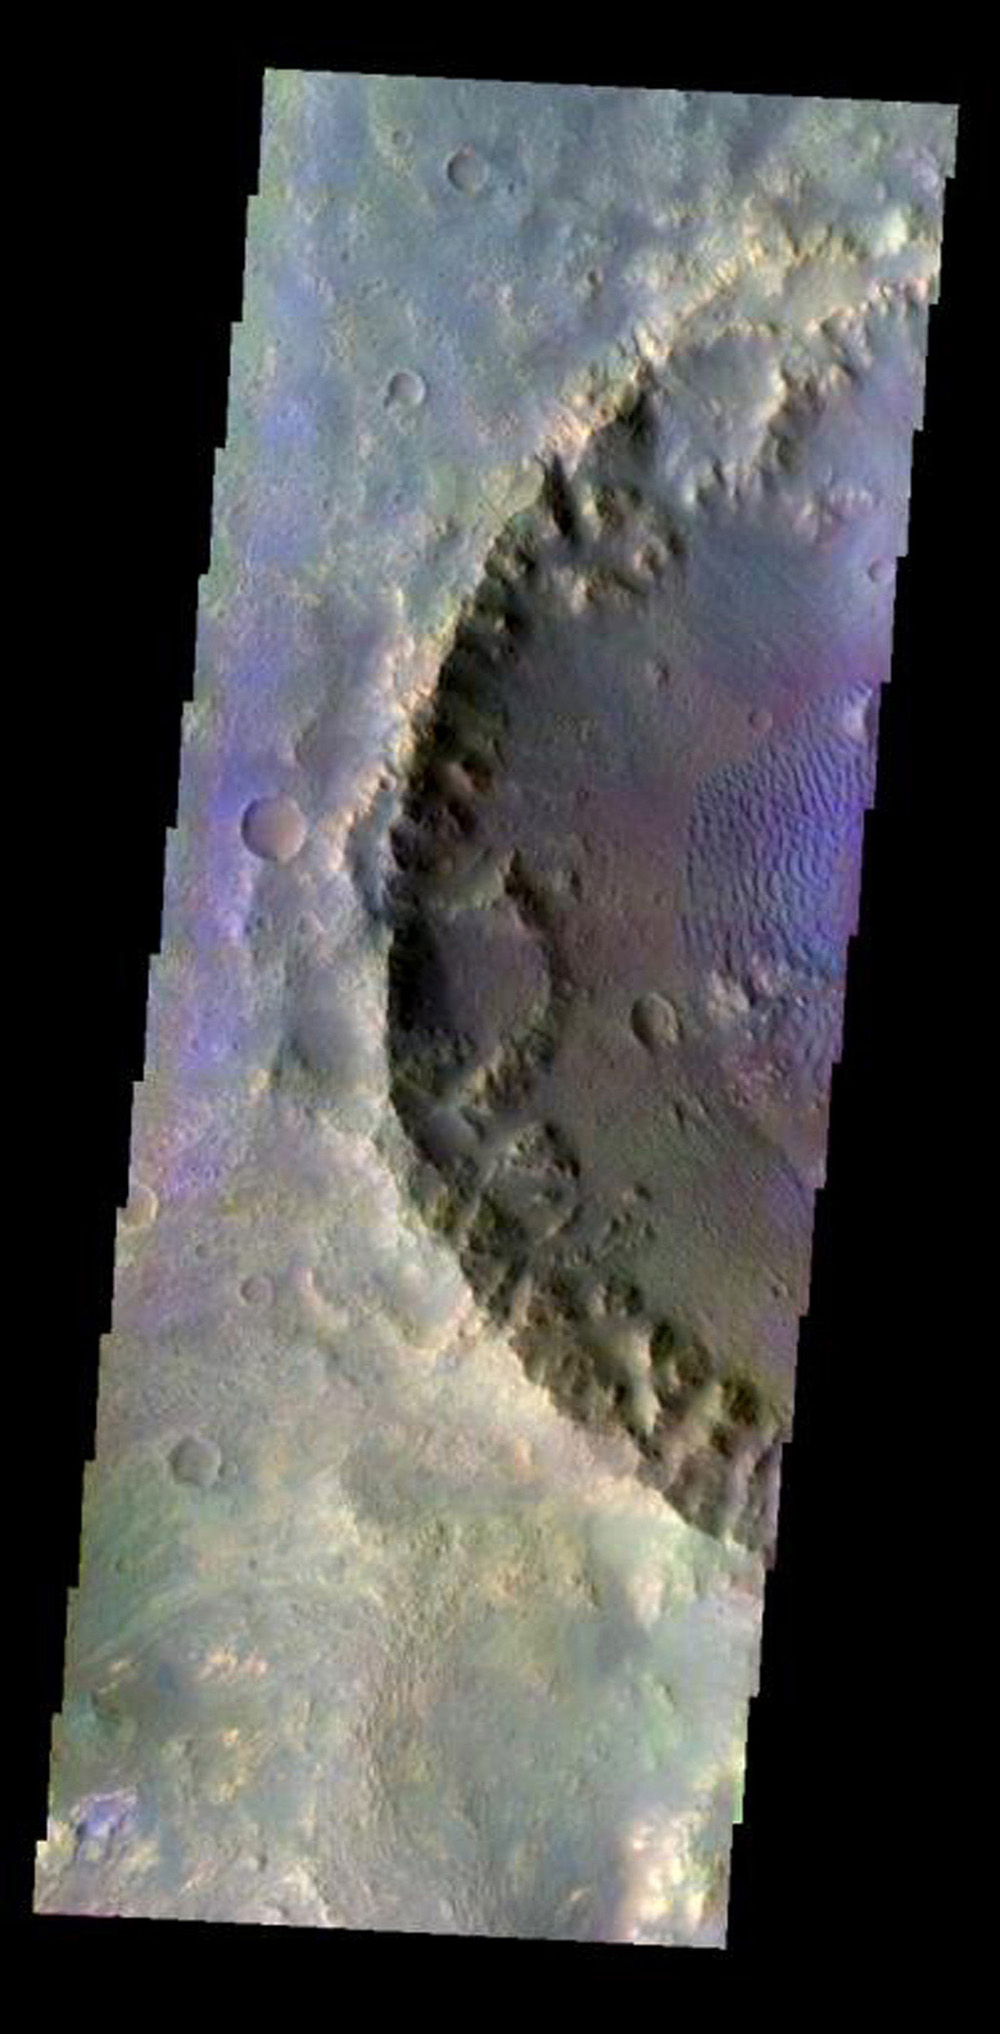 This color image from NASA's 2001 Mars Odyssey released on May 4, 2004 shows the martian surface during the southern summer season of a crater within Molesworth Crater.